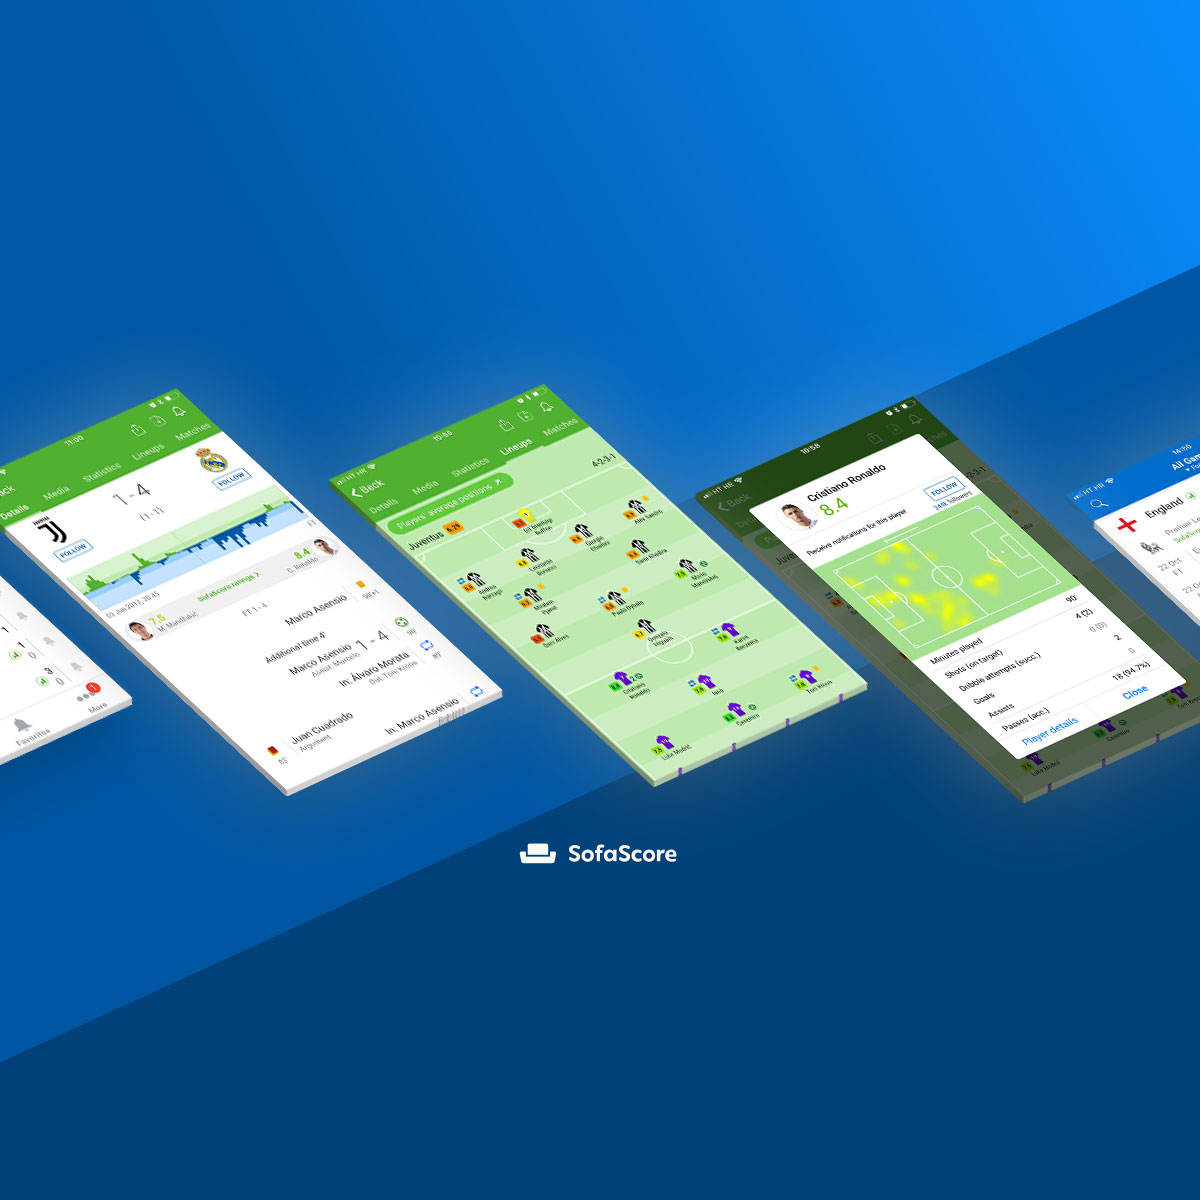 | SofaScore provides live player ratings feed for fantasy ...